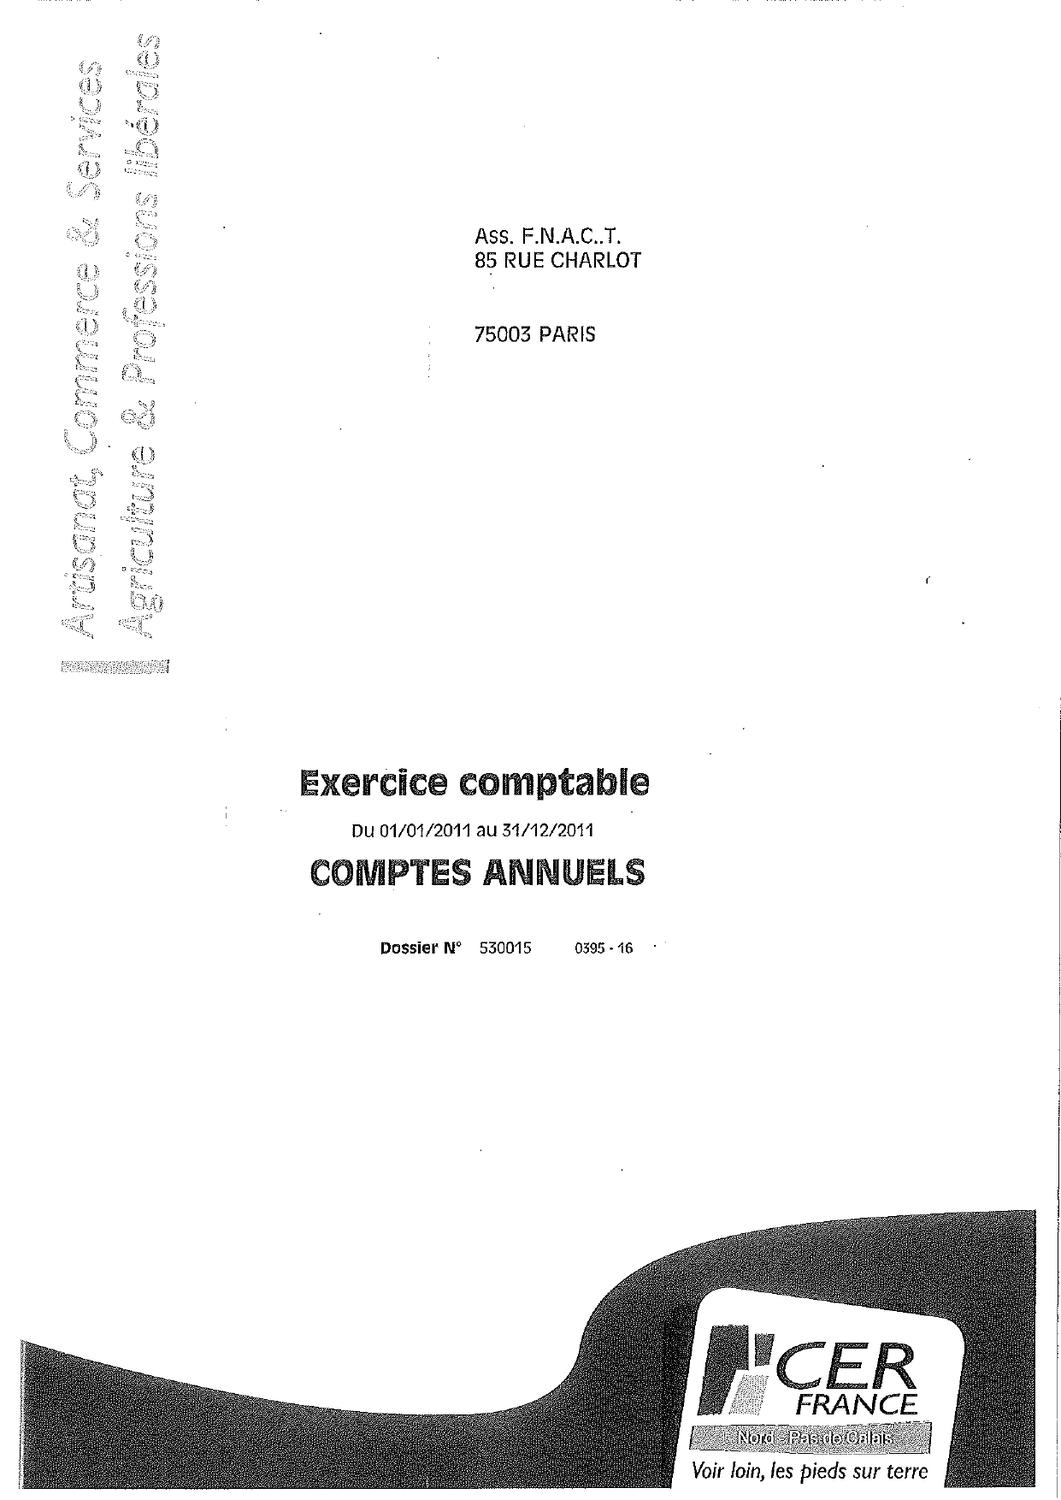 exercice comptable fnactcftc 2011 by fnact cftc issuu